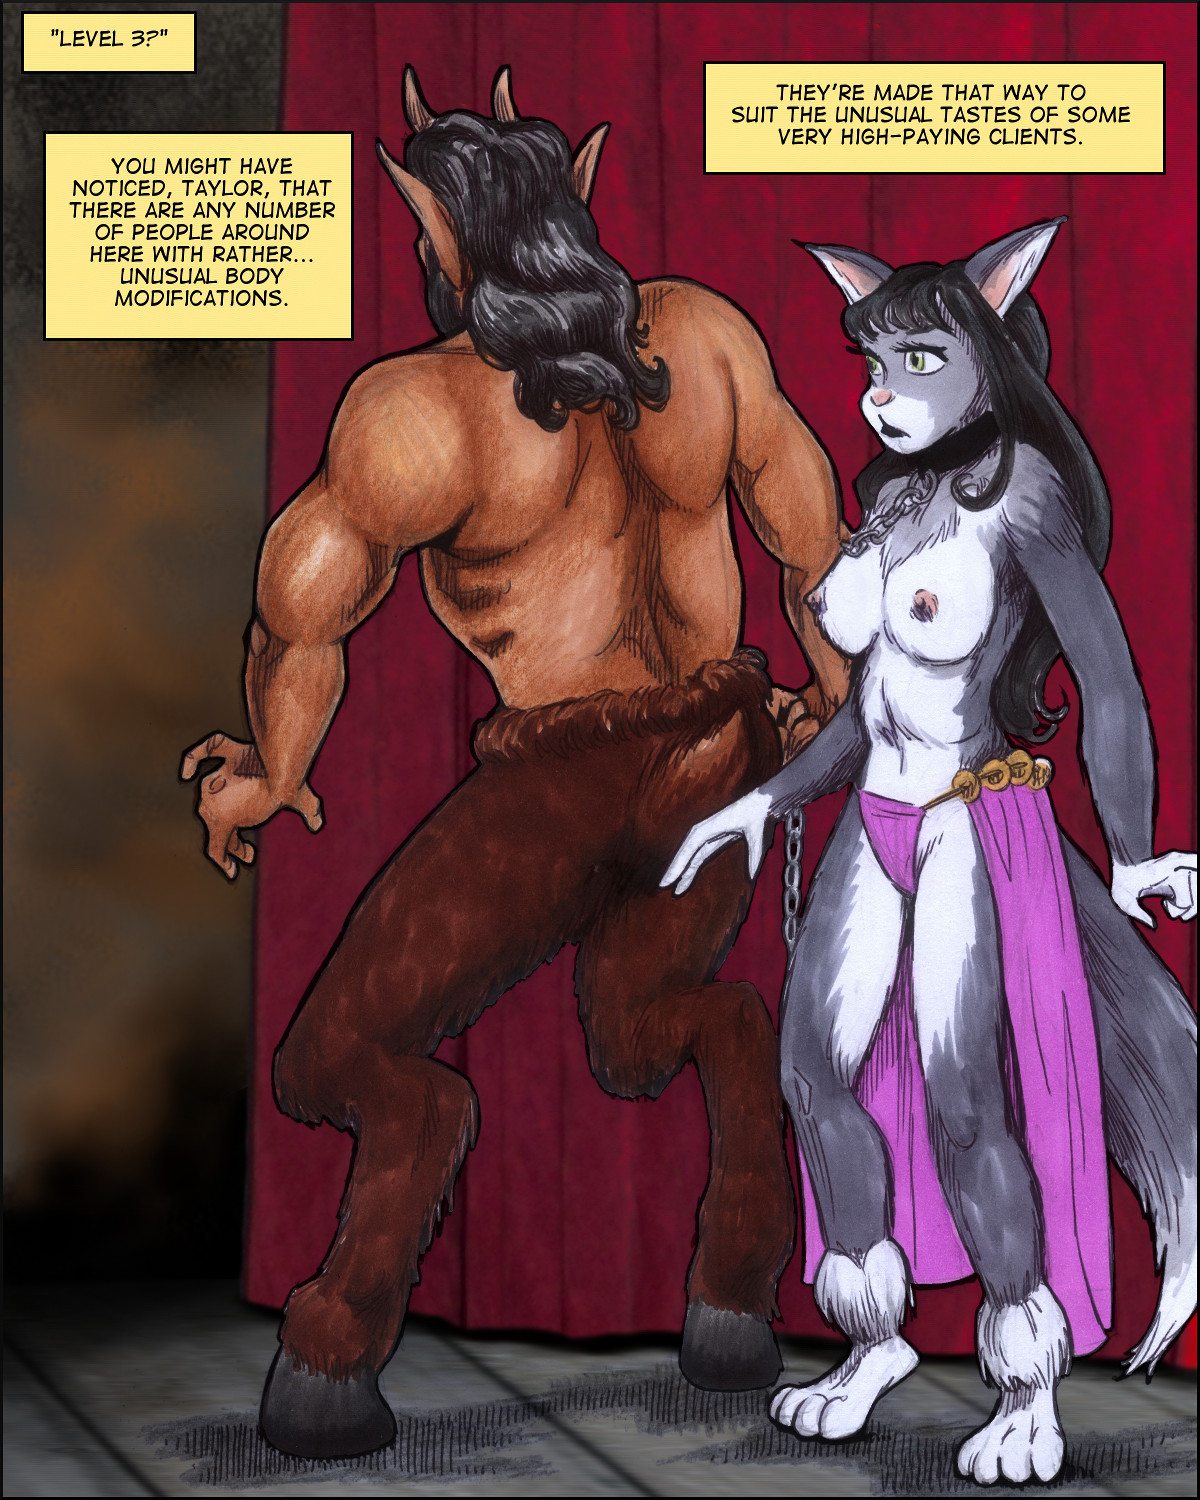 A catgirl and a giant satyr.